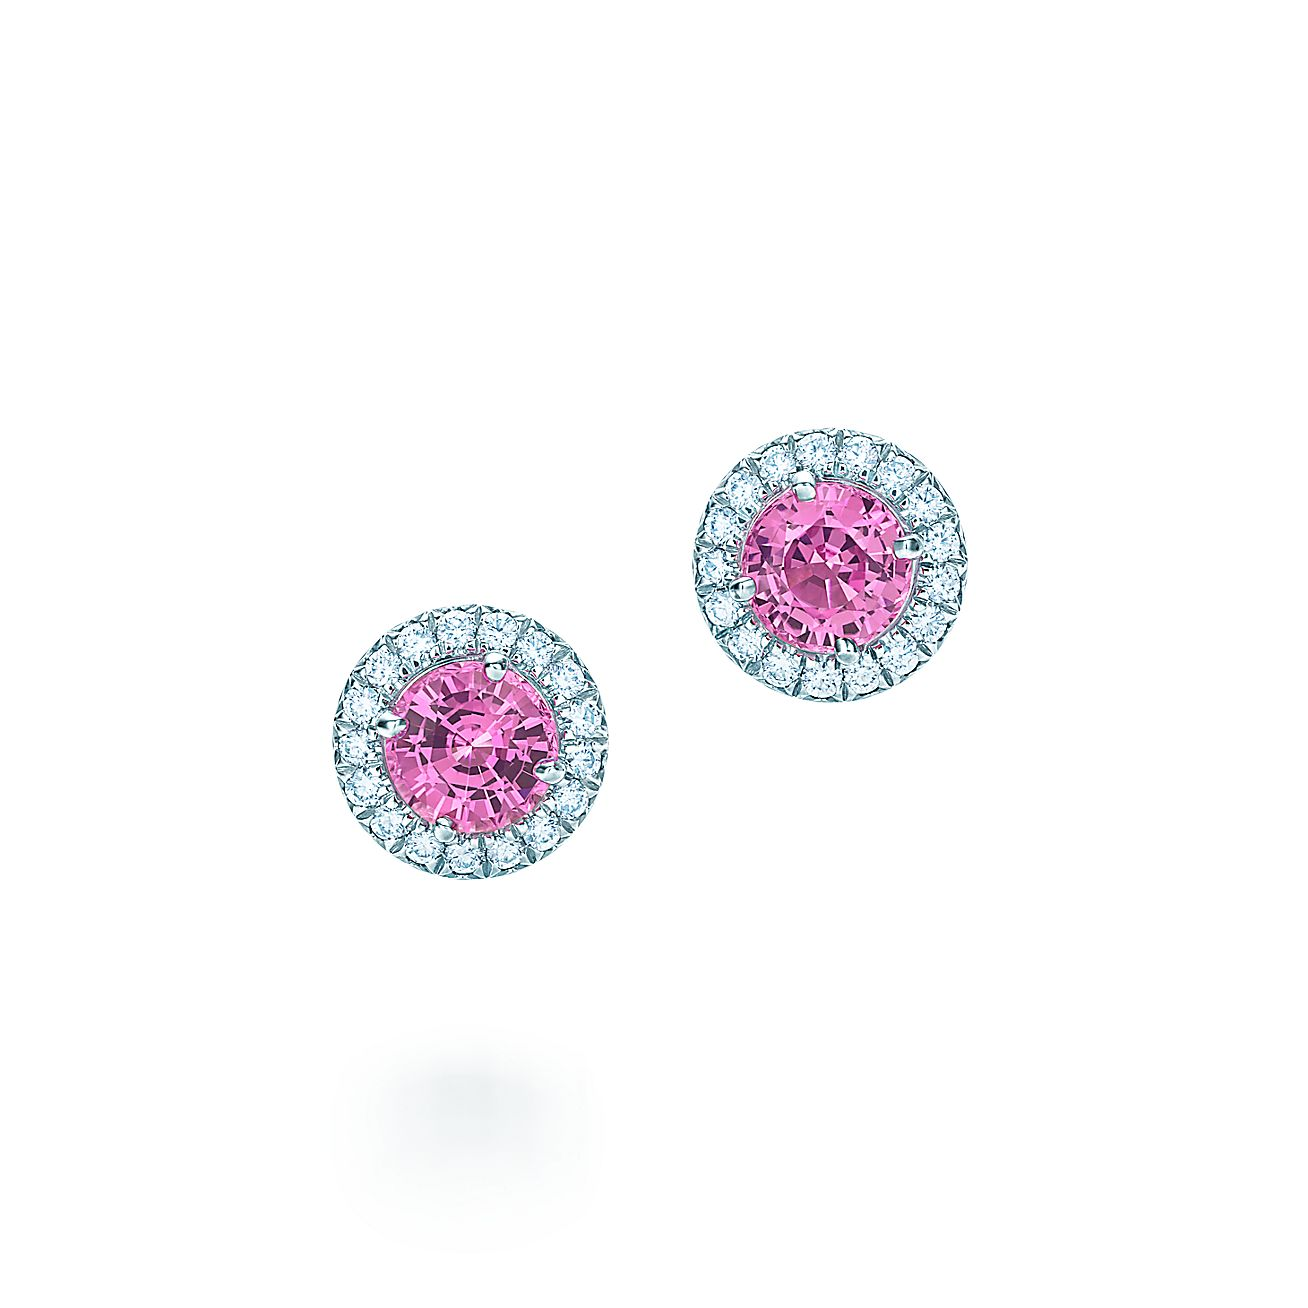 Tiffany Soleste® Earrings In Platinum With Pink Sapphires And Diamonds   Tiffany & Co